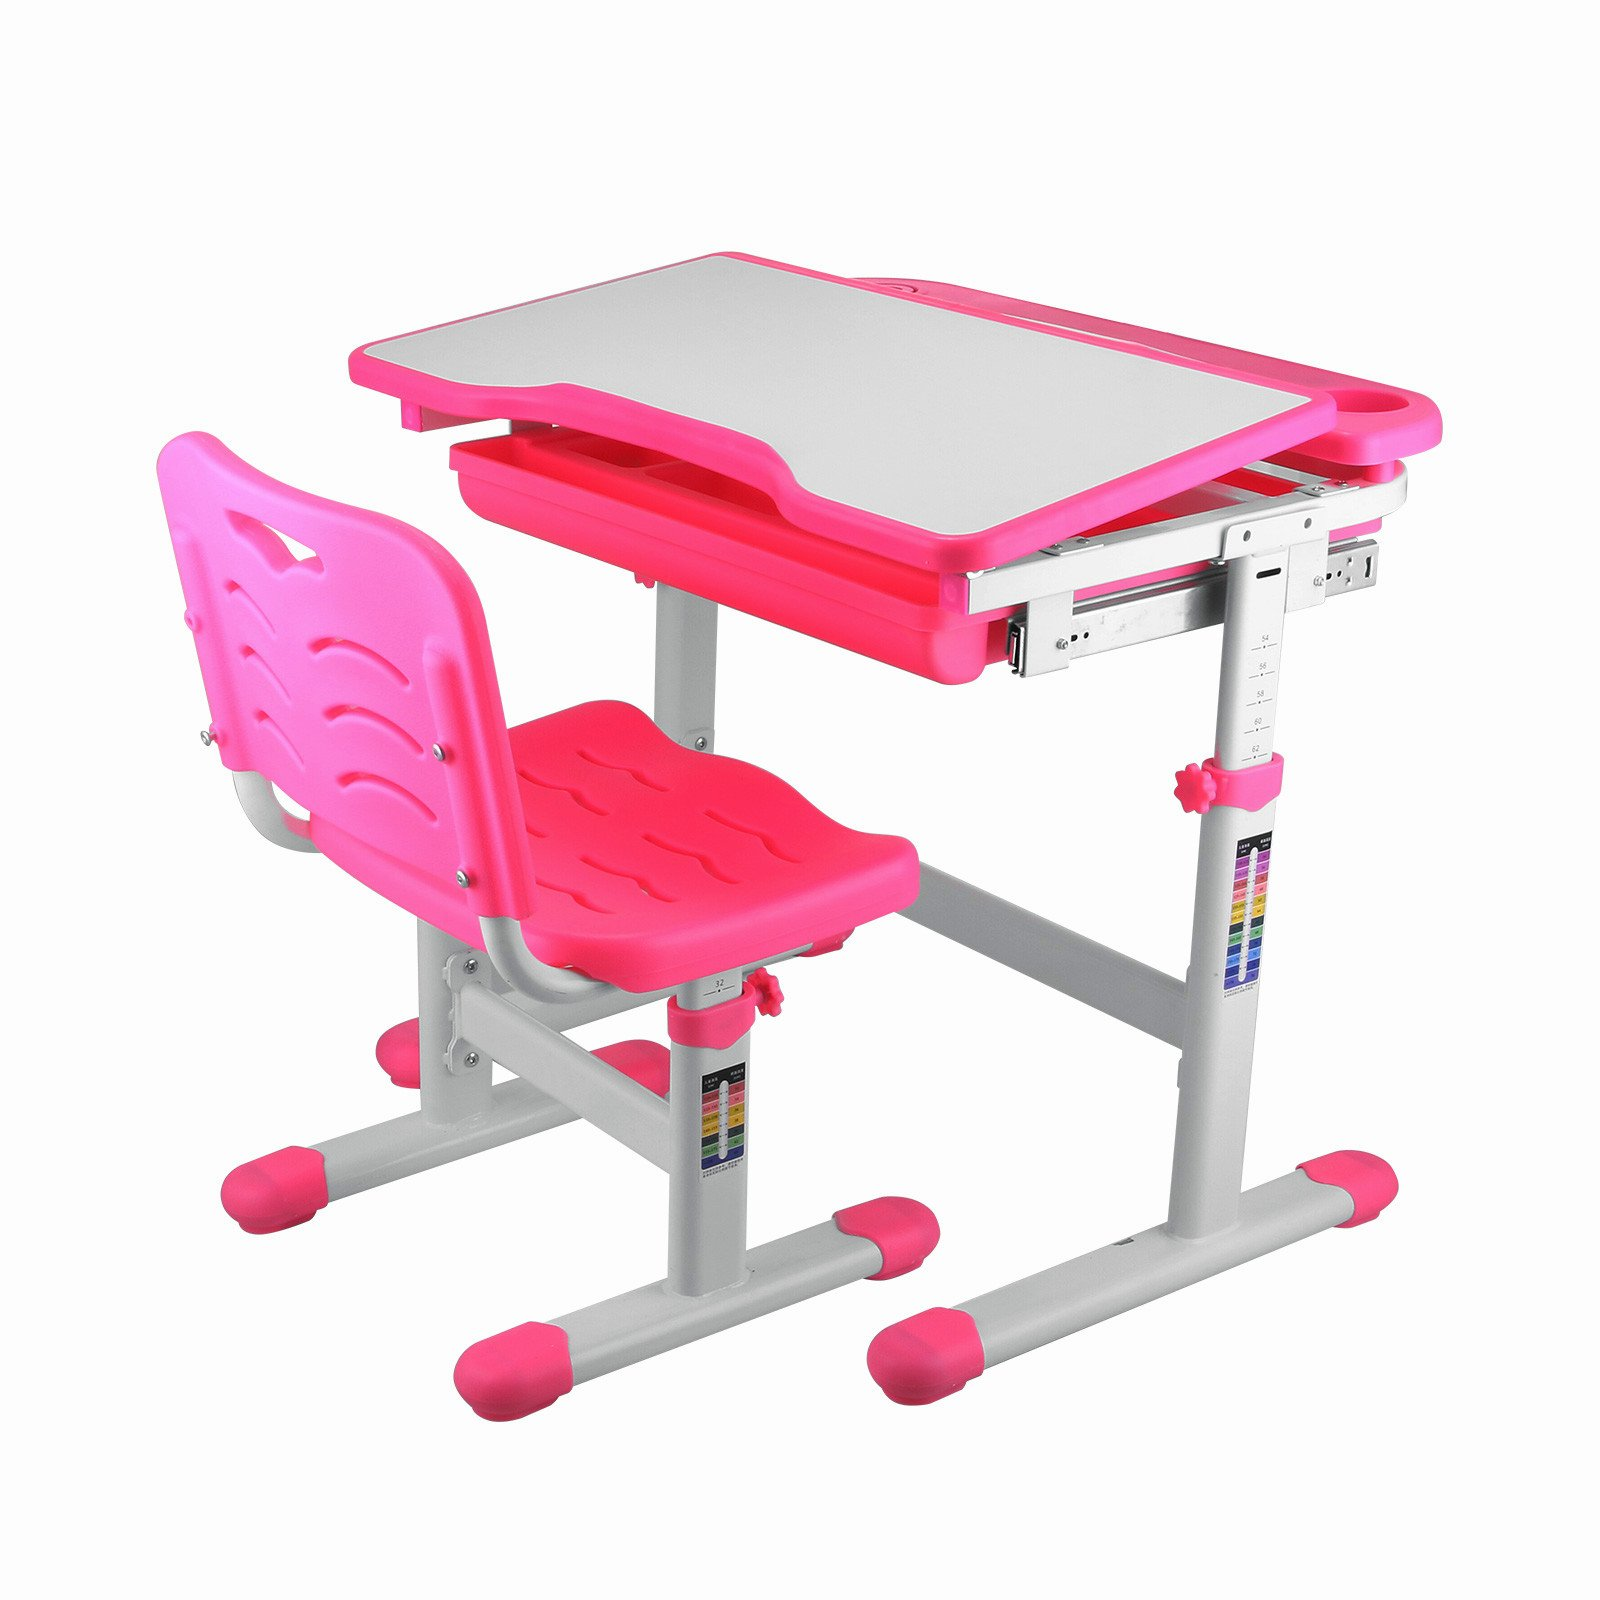 Forkwin Adjustable Children Desk from 21Inch to 30Inch Adjustable Study Desk for Ages 3-10 Adjustable Height Children's Desk Pink Children's Height Adjustable Study Desk (Pink) by Forkwin